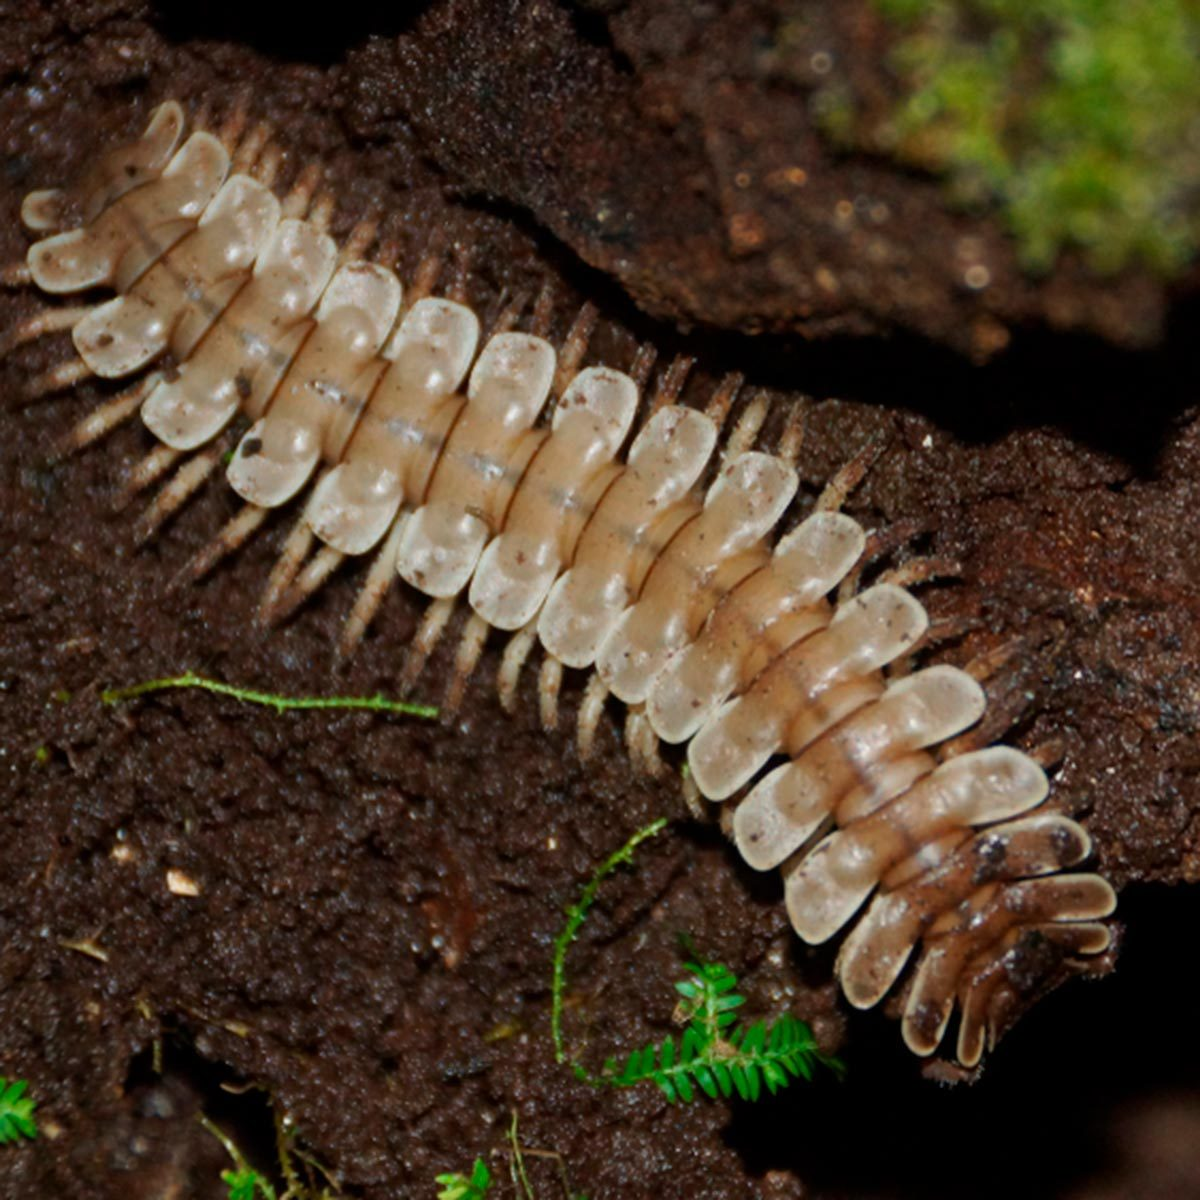 Millipede Vs Centipede And How To Keep Them Both Out Of